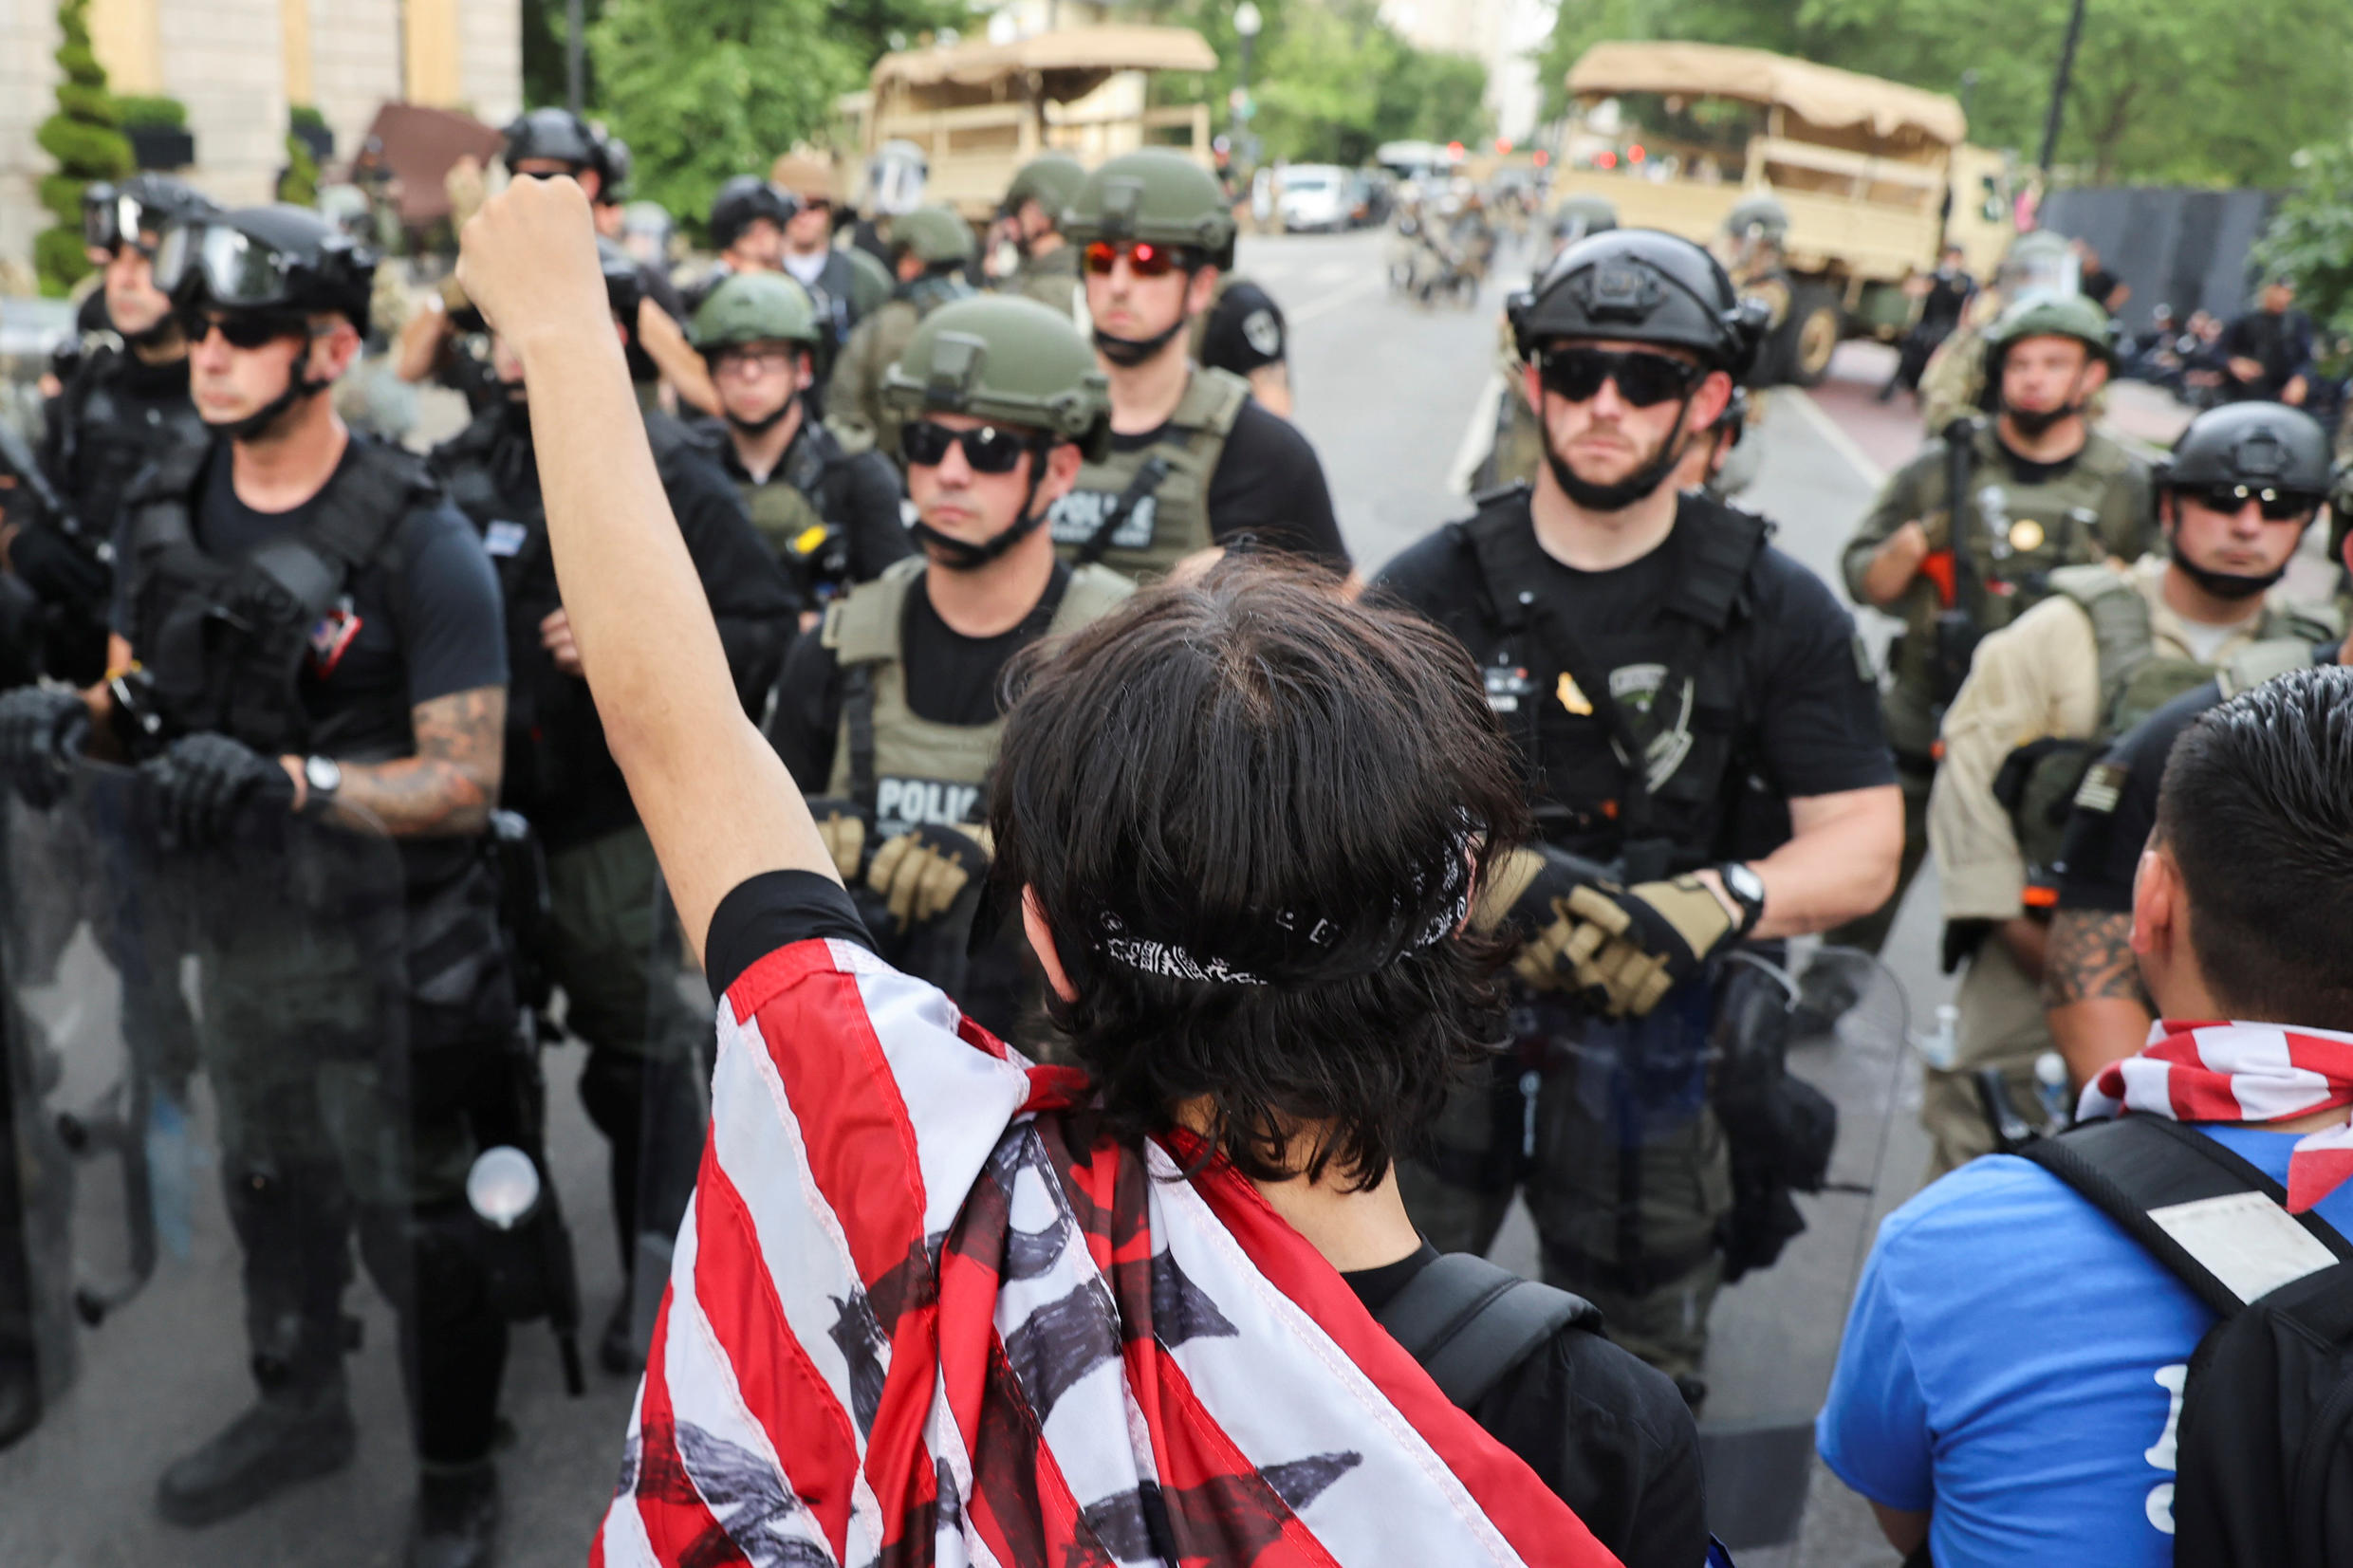 2020-06-03T220759Z_1039208605_RC2Y1H98VDTN_RTRMADP_3_MINNEAPOLIS-POLICE-PROTESTS-WASHINGTON